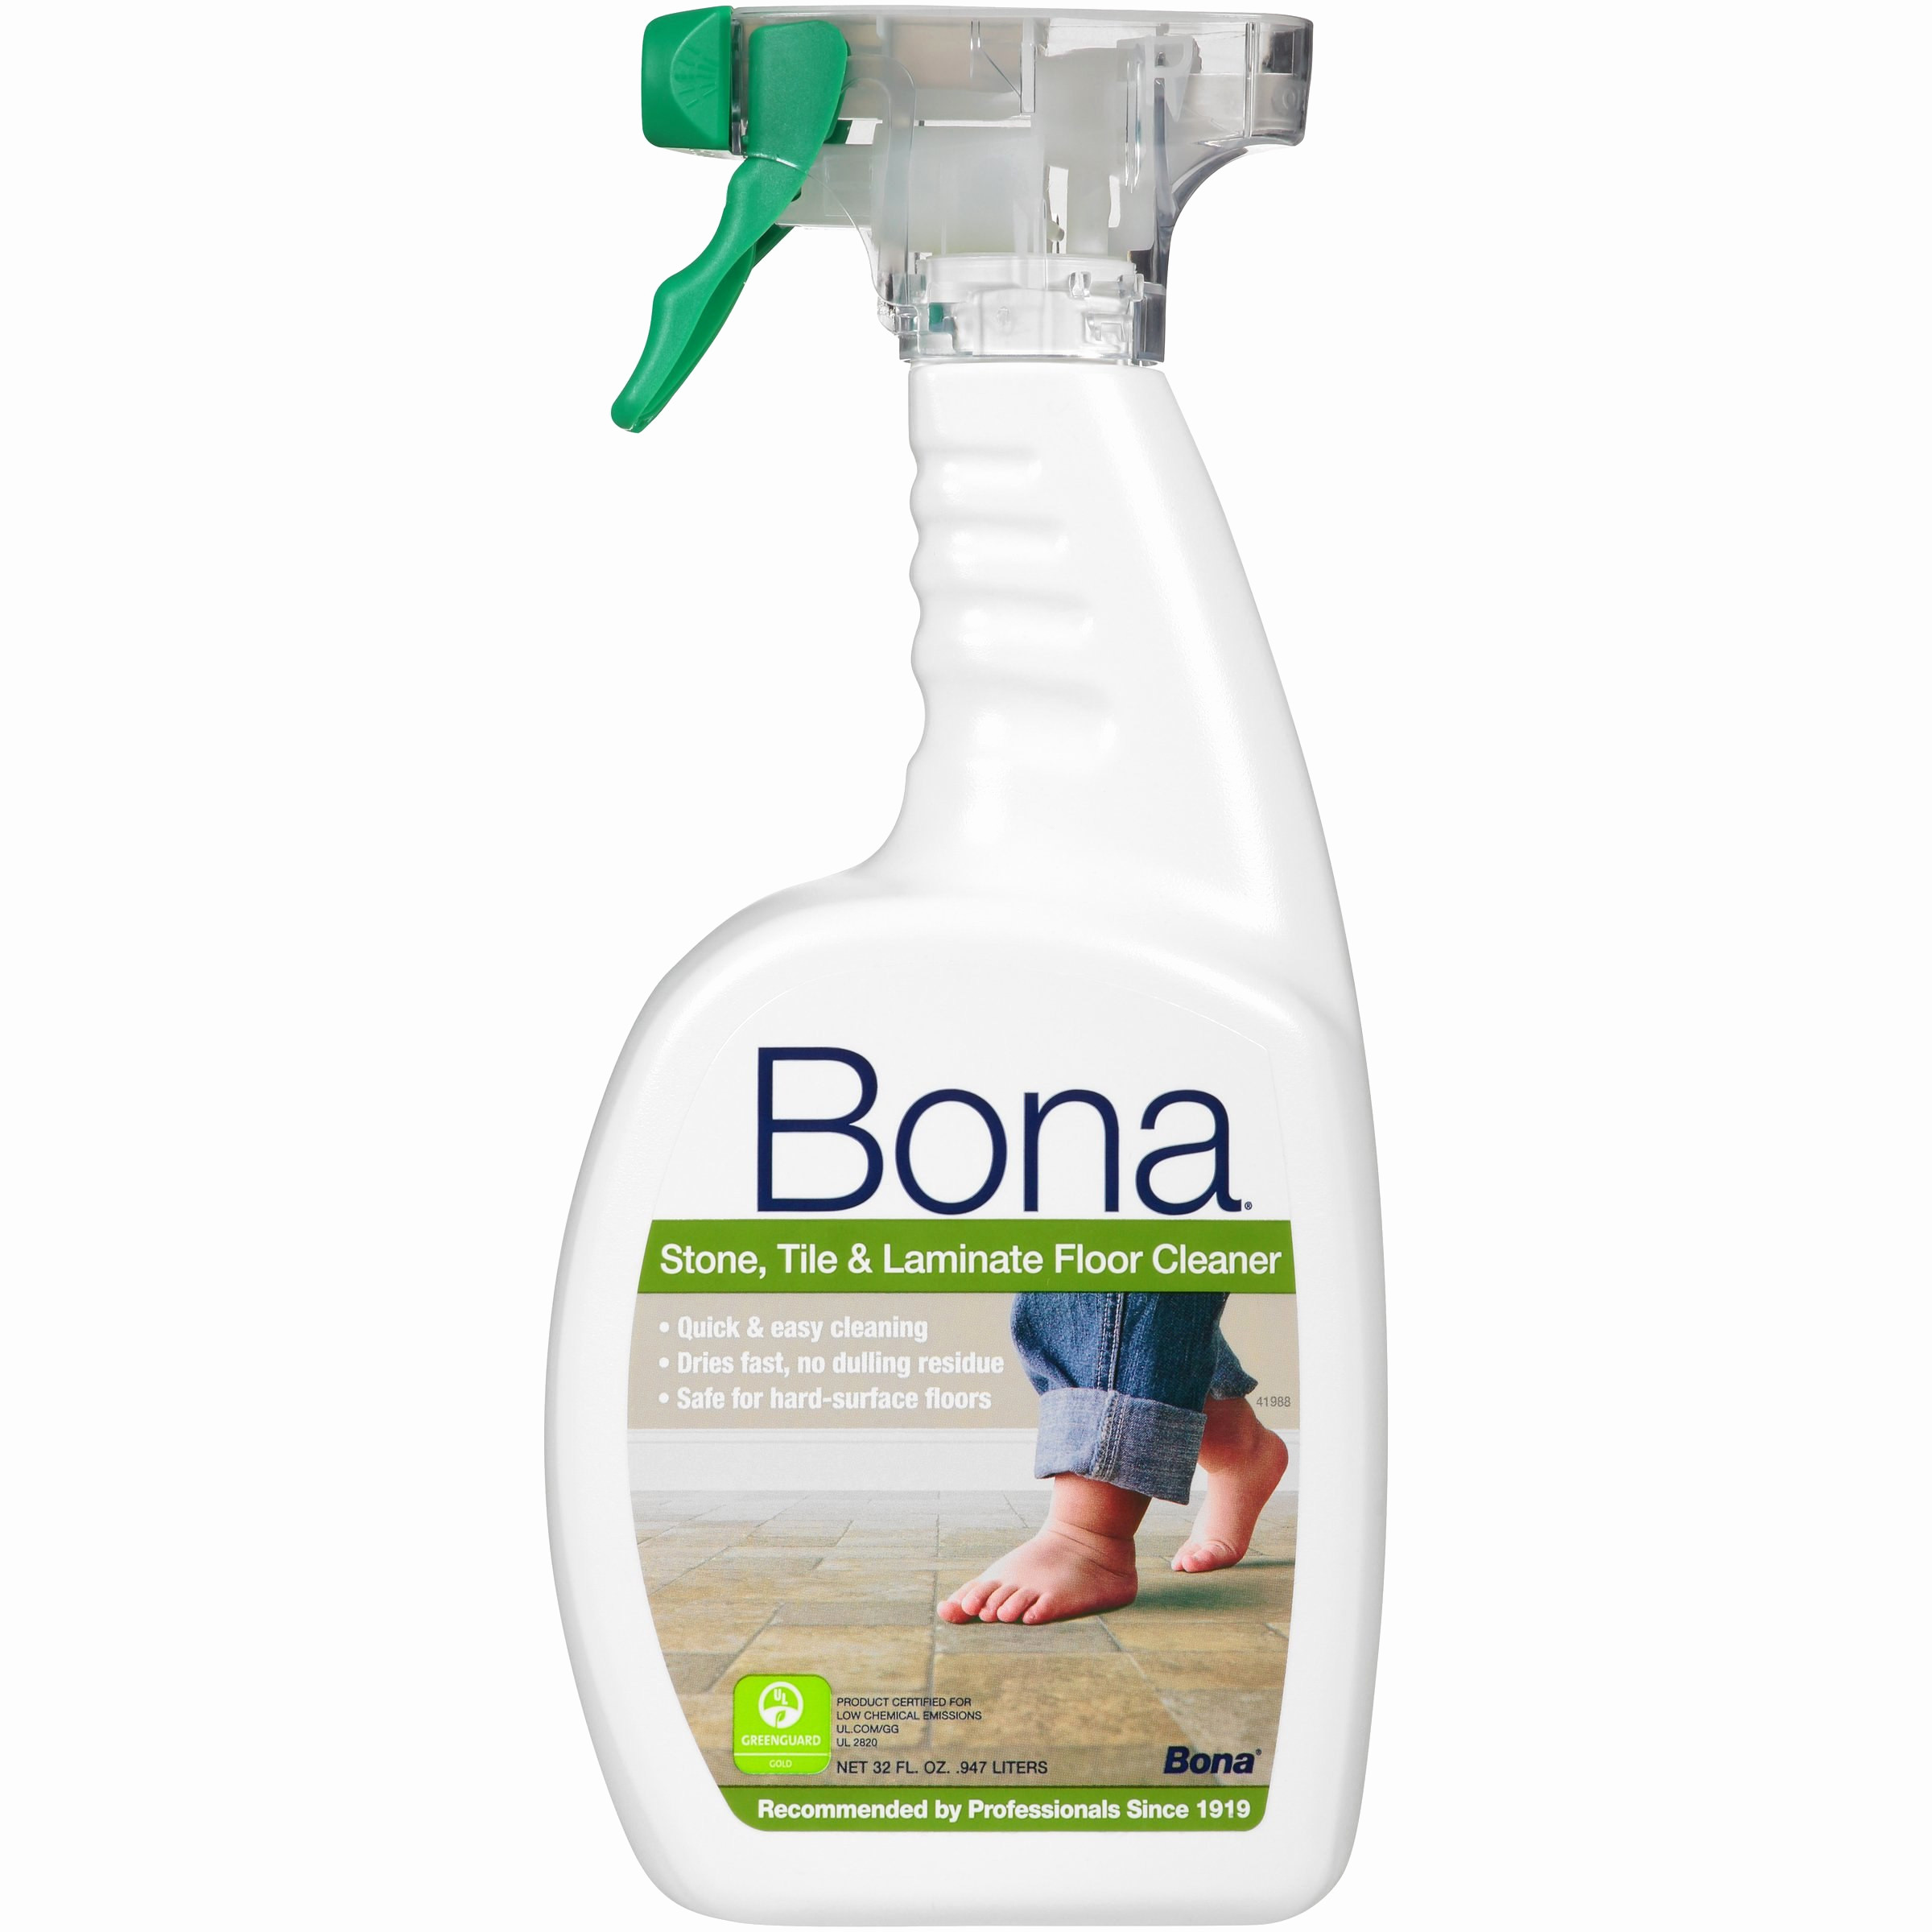 bruce 64 fl oz hardwood floor cleaner of 46 elegant the best of bona hardwood floor mop laminate mobel pertaining to bona hardwood floor mop laminate fresh bona tile cleaner inspirational bona hardwood floor cleaner refill